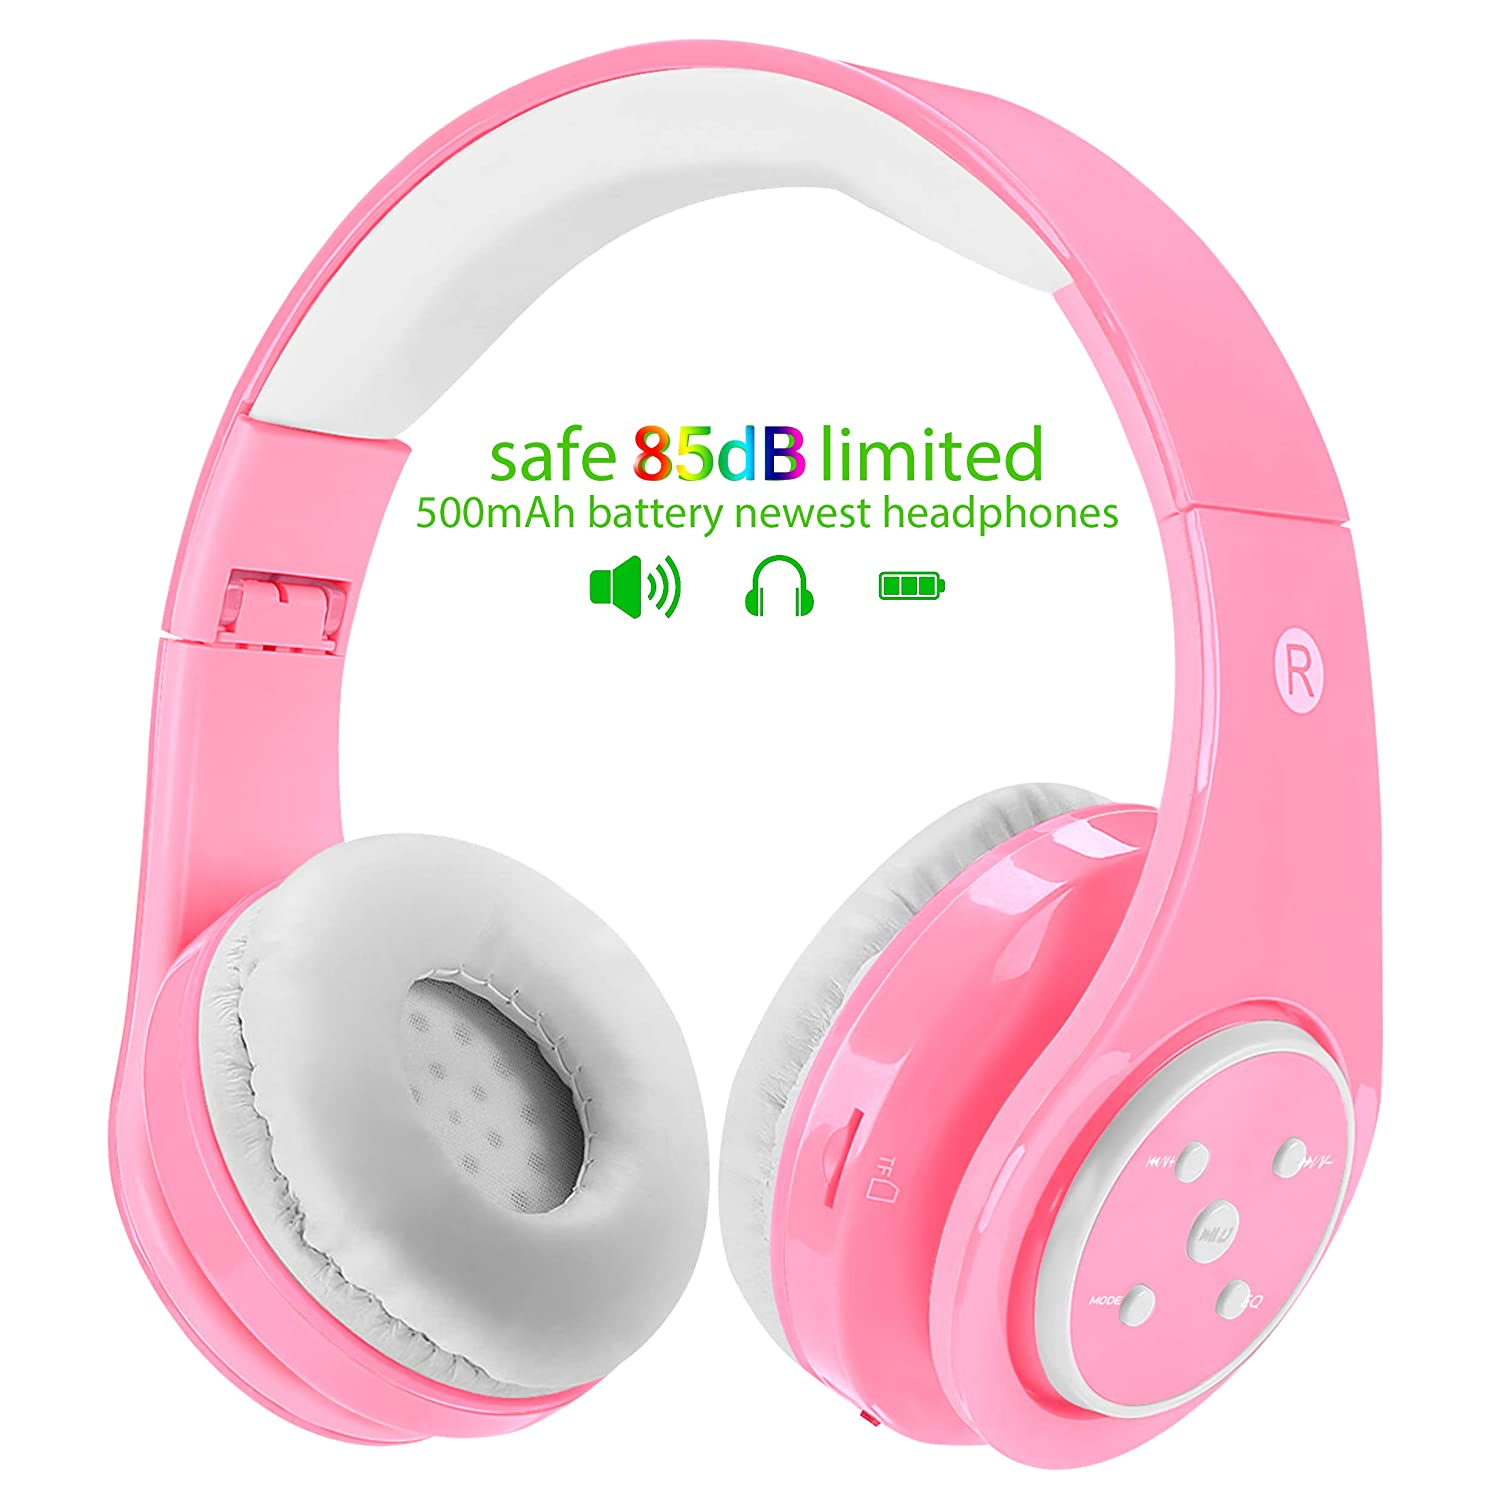 Kids Wireless Bluetooth Headphones Volume Limited 85db Stereo Sound Over-Ear Foldable Lightweight Children Headphones with Mic SD Card Slot up to 6-8 Hours Play time for Boys Girls Adults Pink